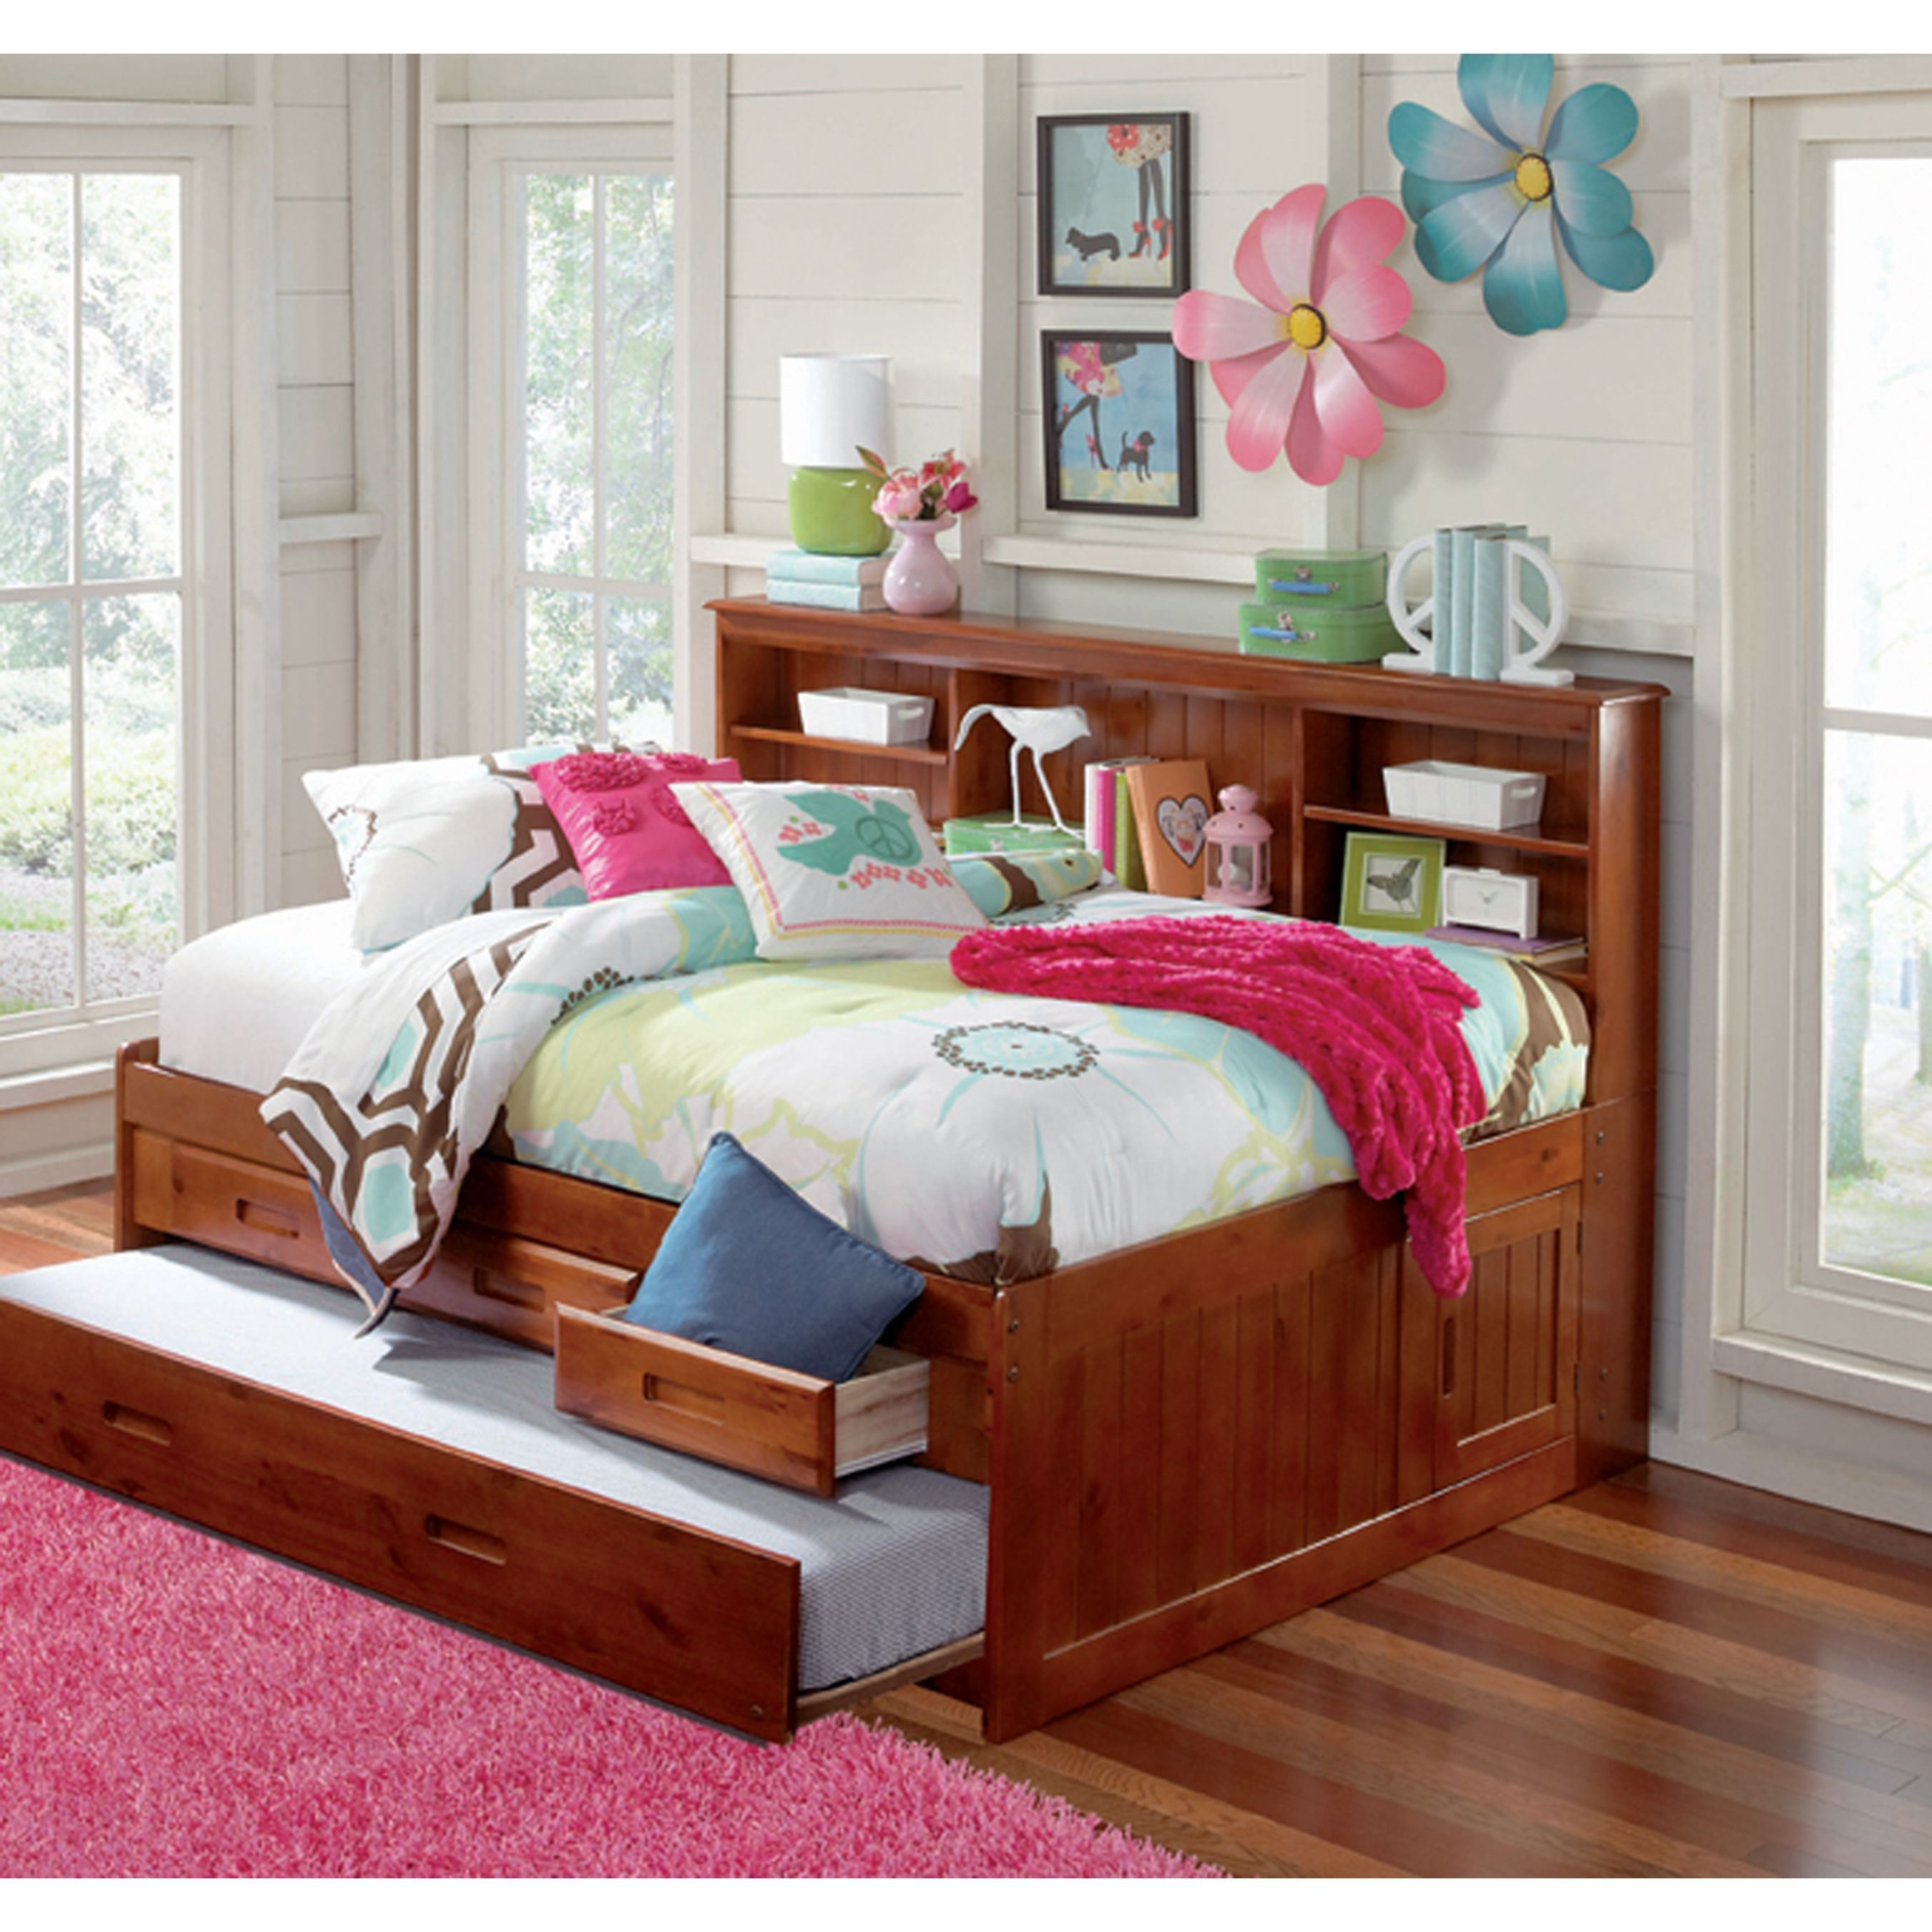 Daybed with trundle full size american sized daybed   drawers and twin trundle  products